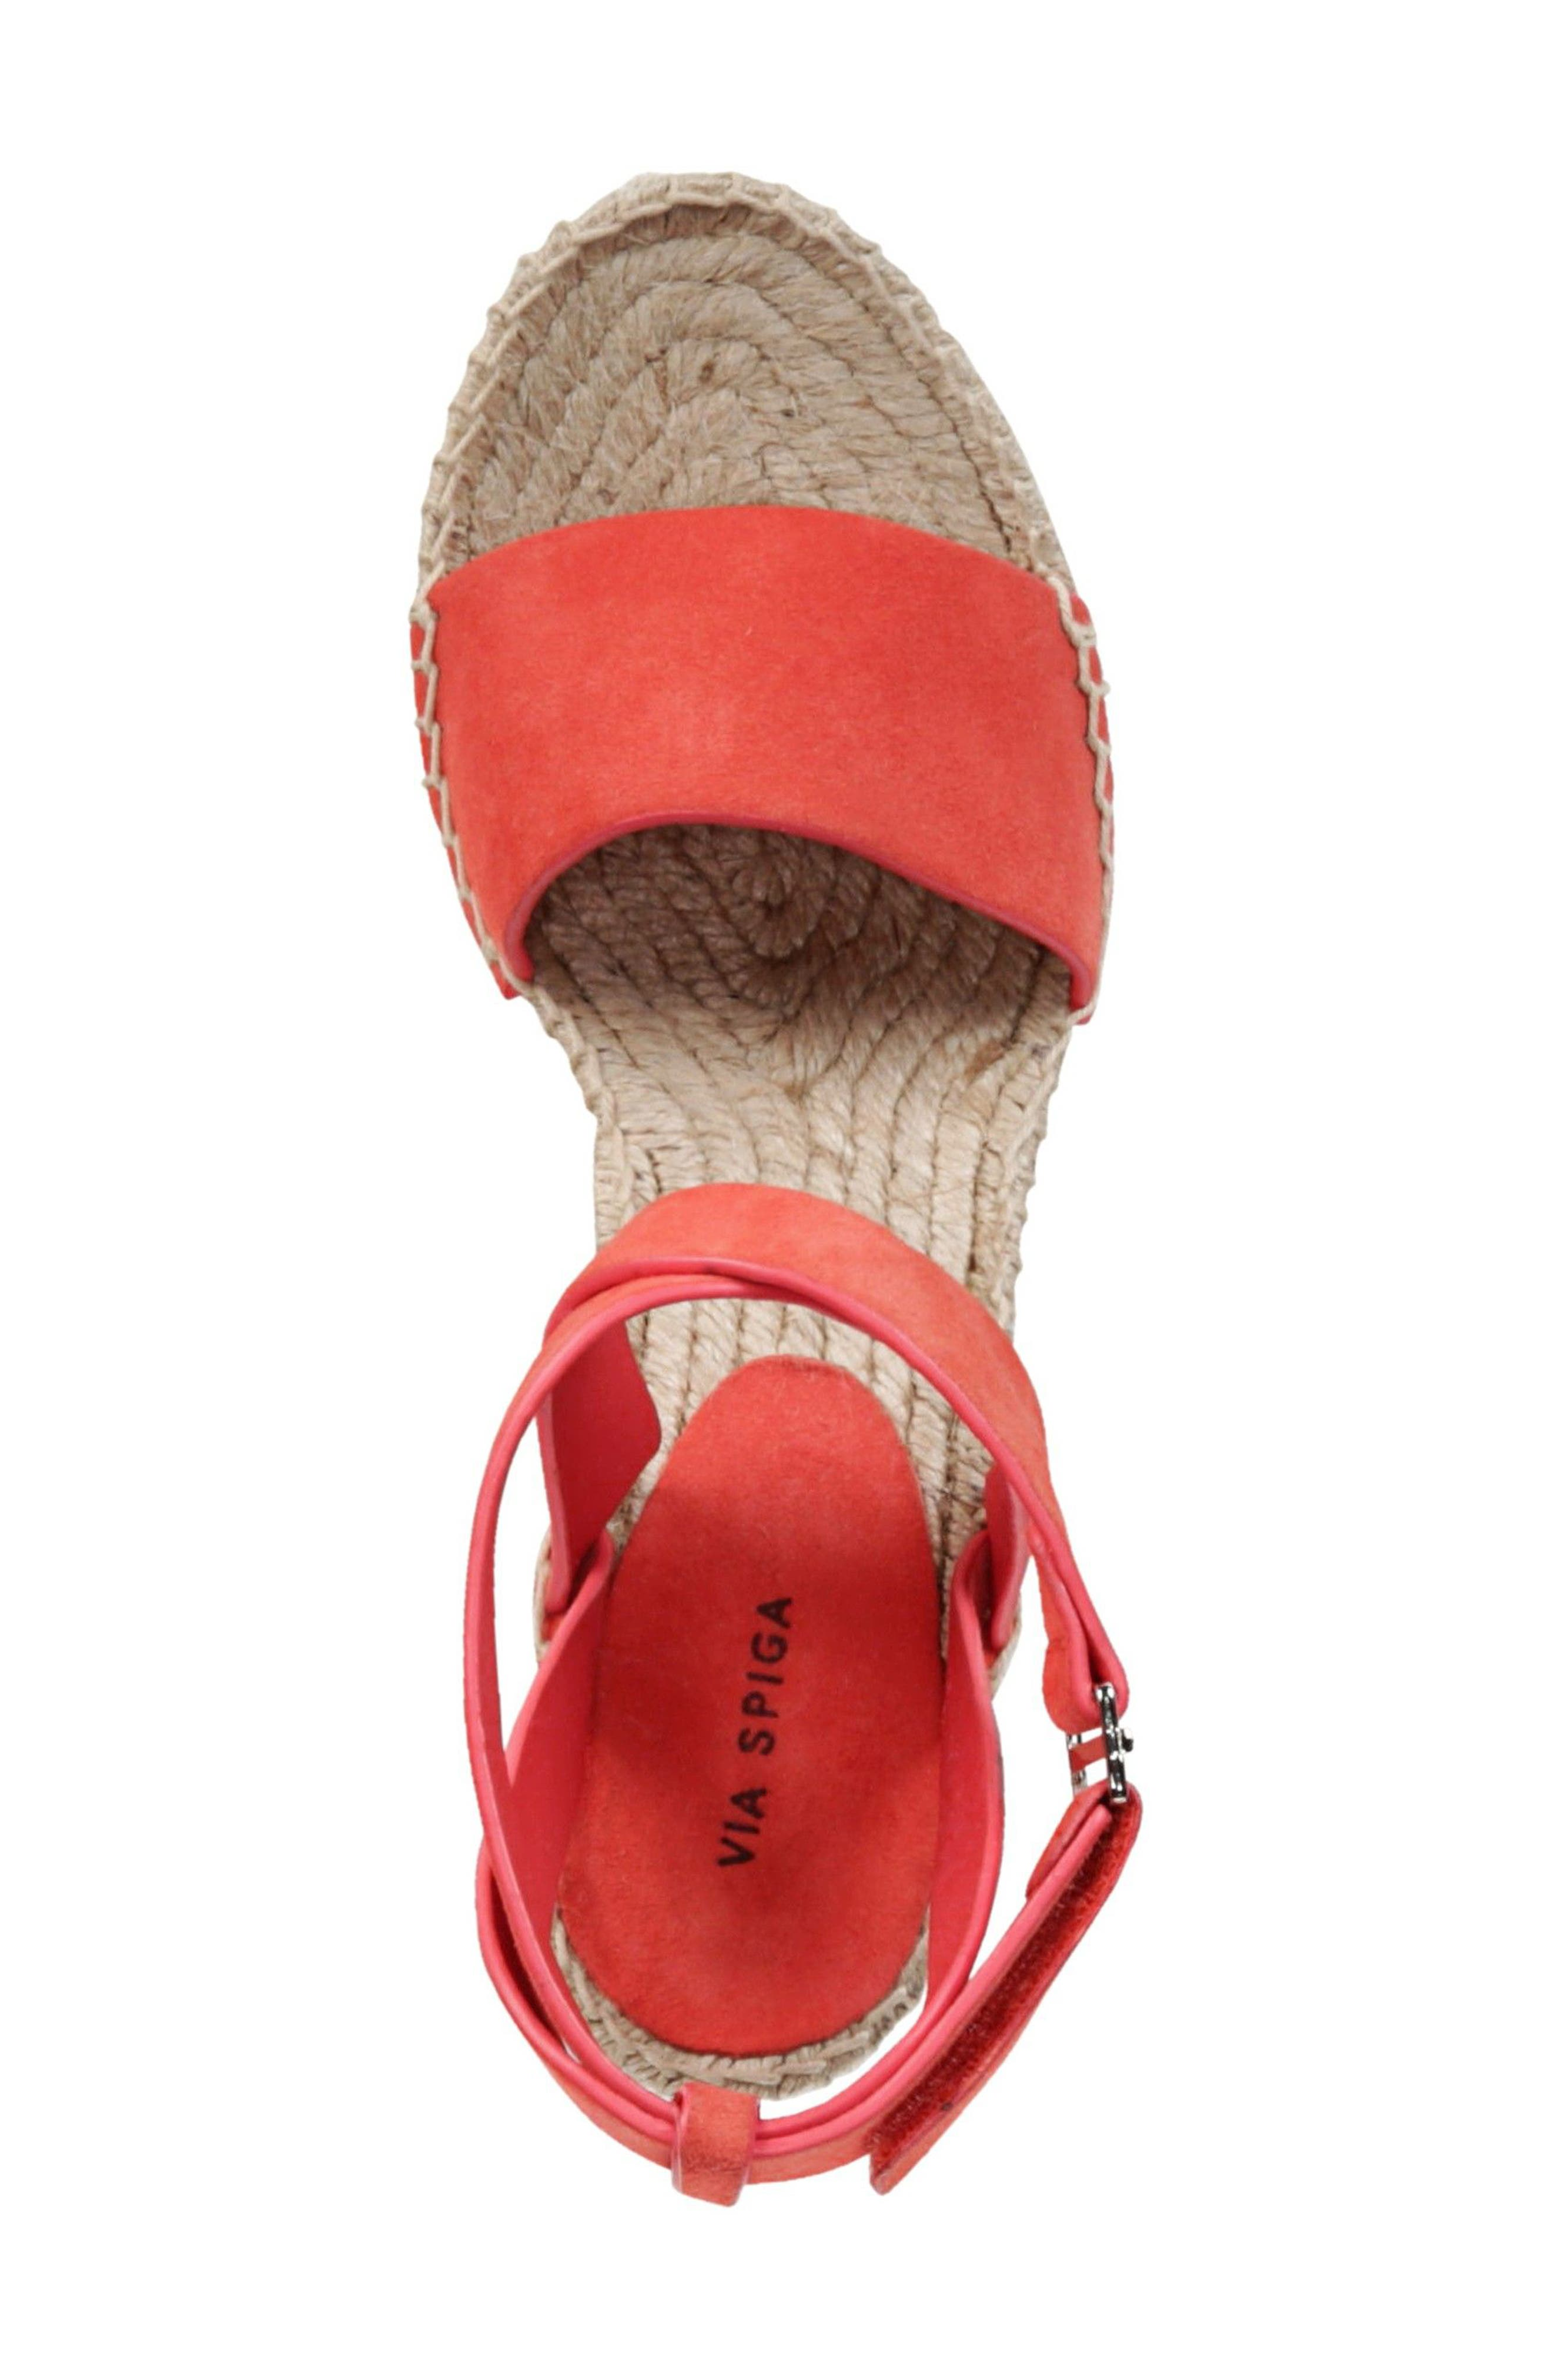 Nevada Espadrille Wedge Sandal,                             Alternate thumbnail 5, color,                             Poppy Red Suede